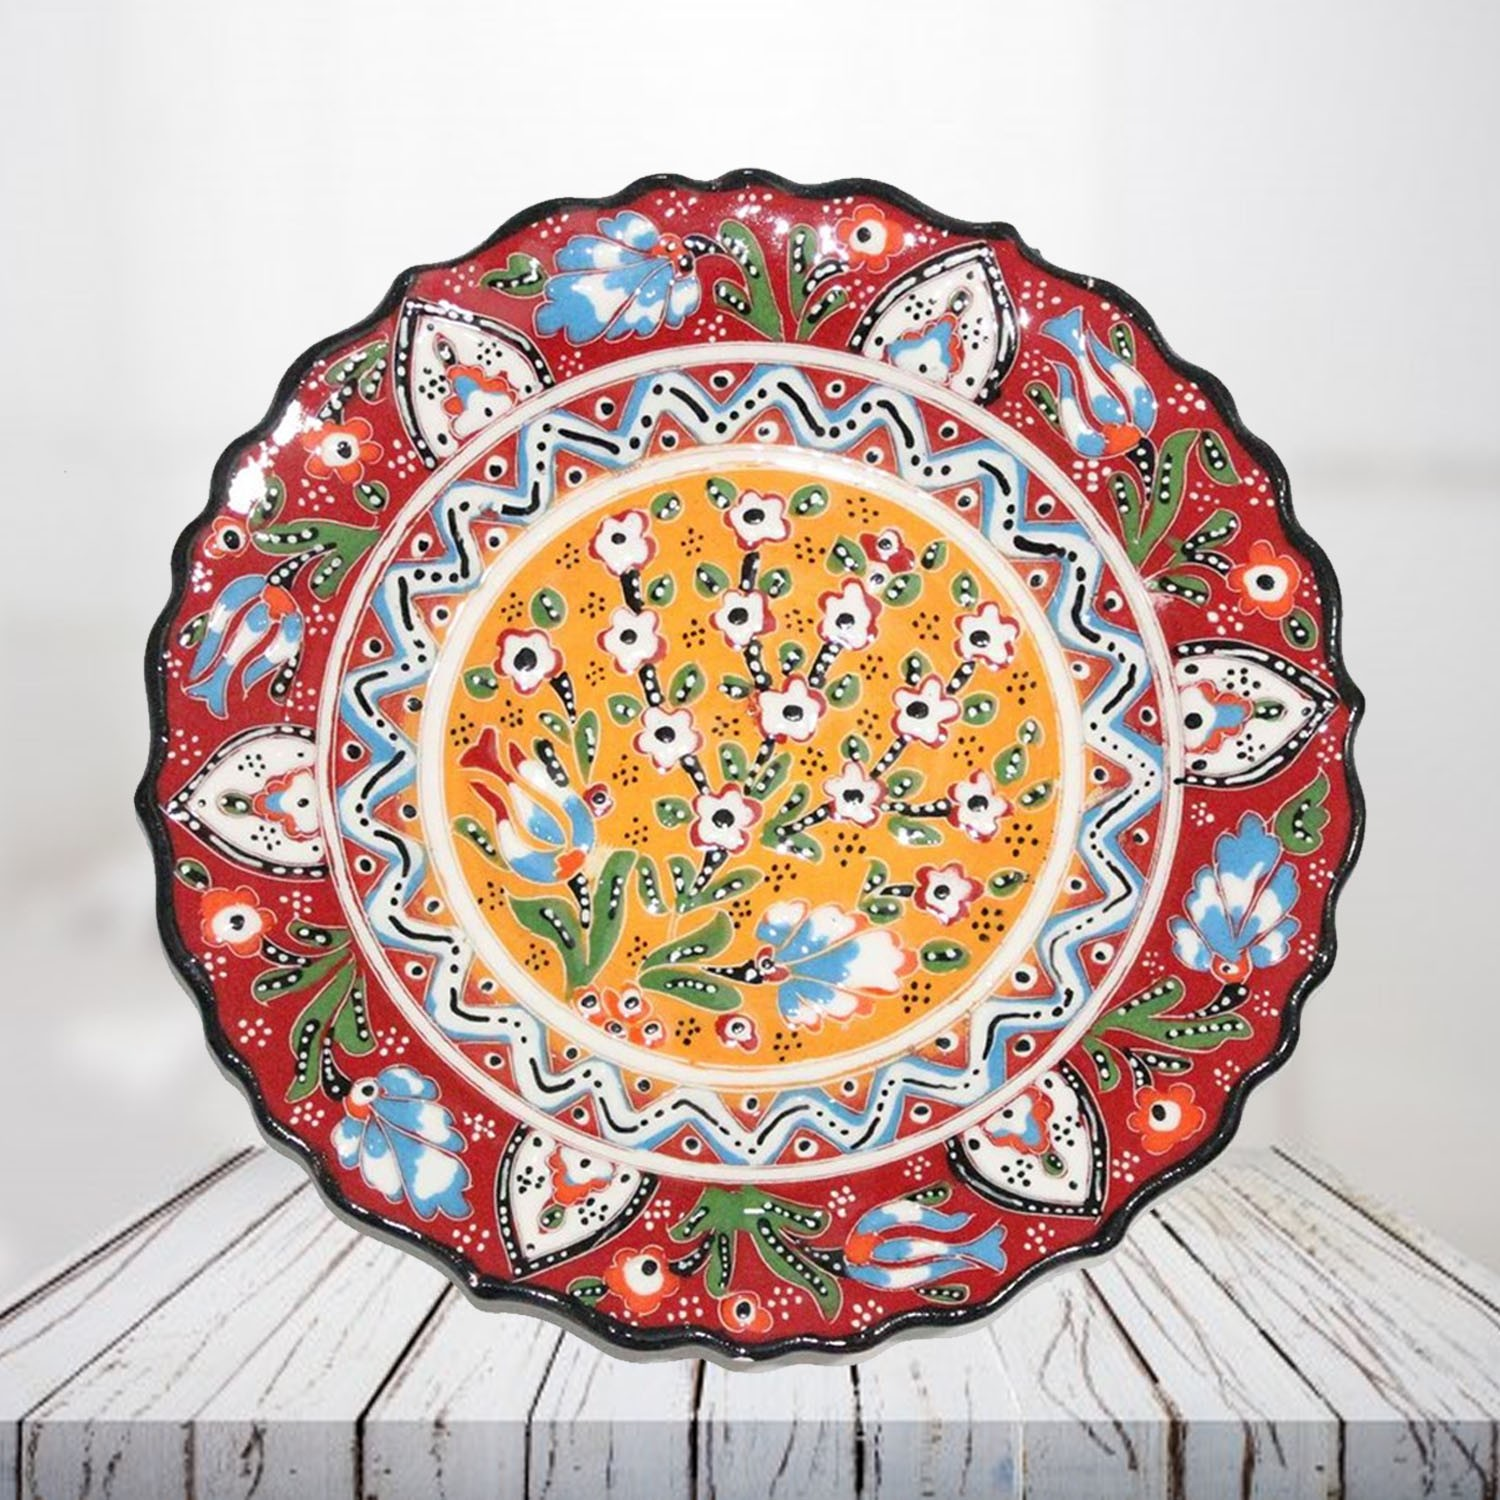 Handpainted 25 cm red ceramic plate - SHI_CP2507